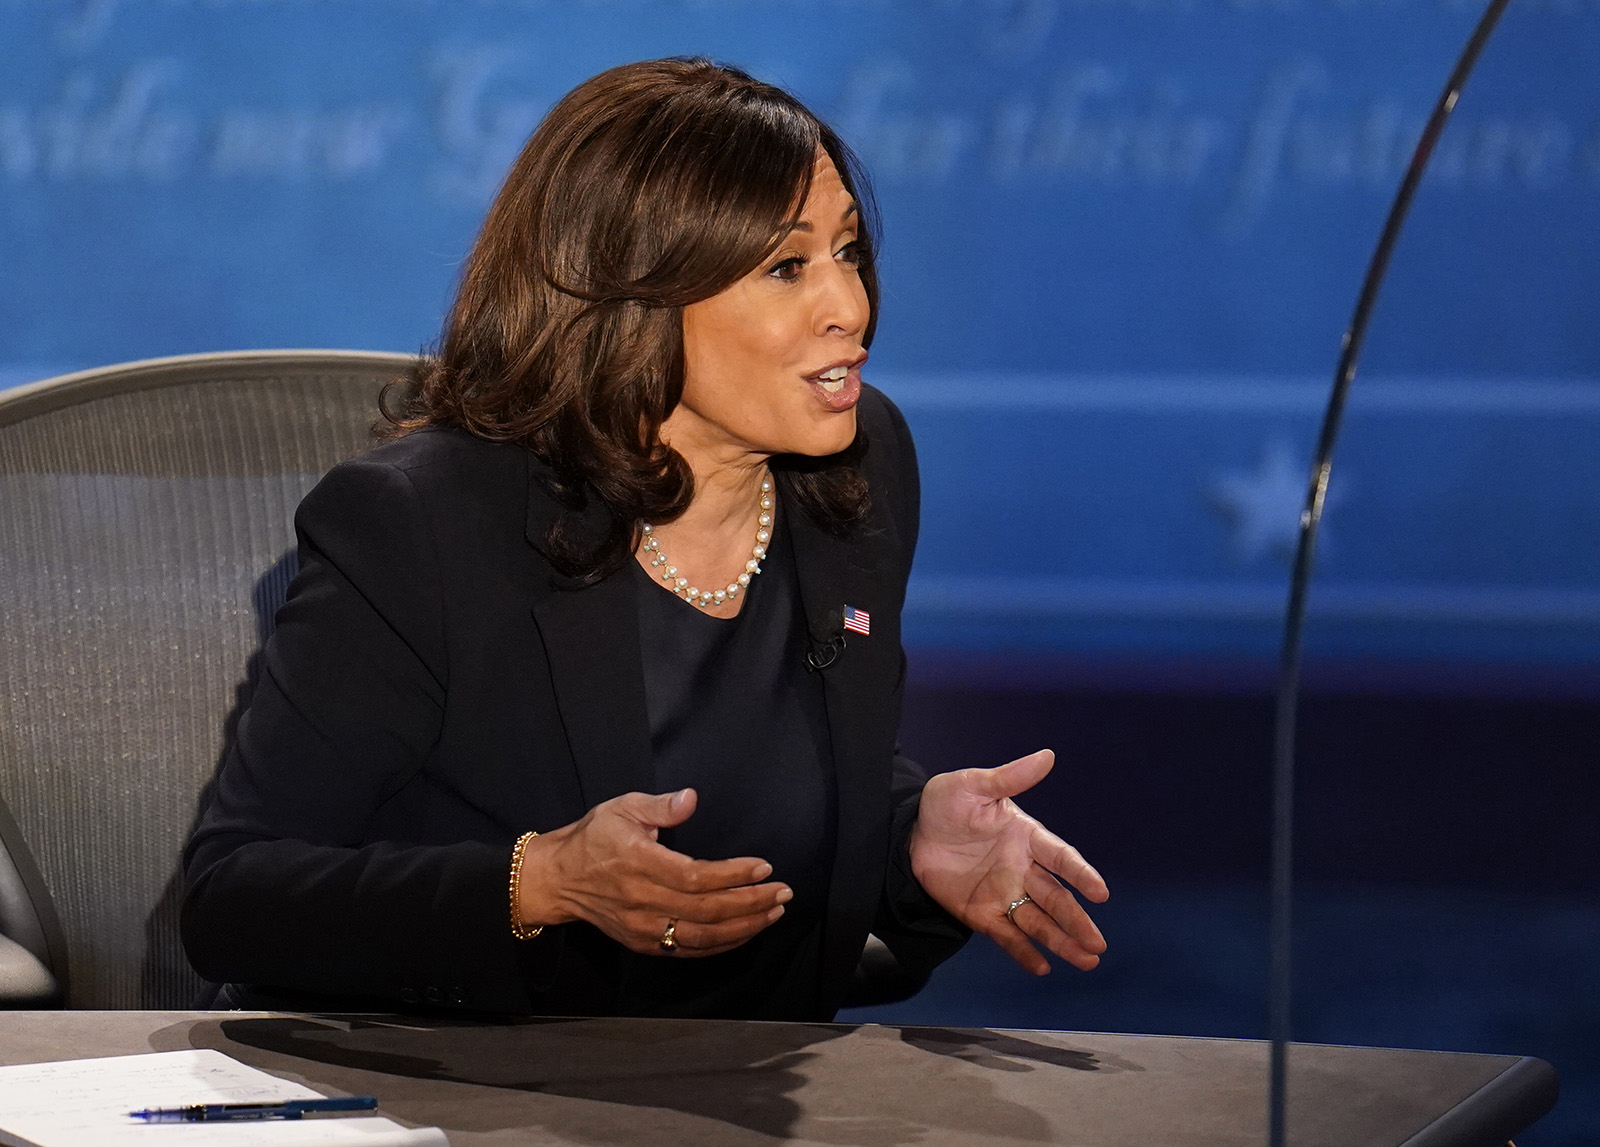 Democratic vice presidential candidate Sen. Kamala Harris speaks to Vice President Mike Pence during the vice presidential debate on Wednesday in Salt Lake City.